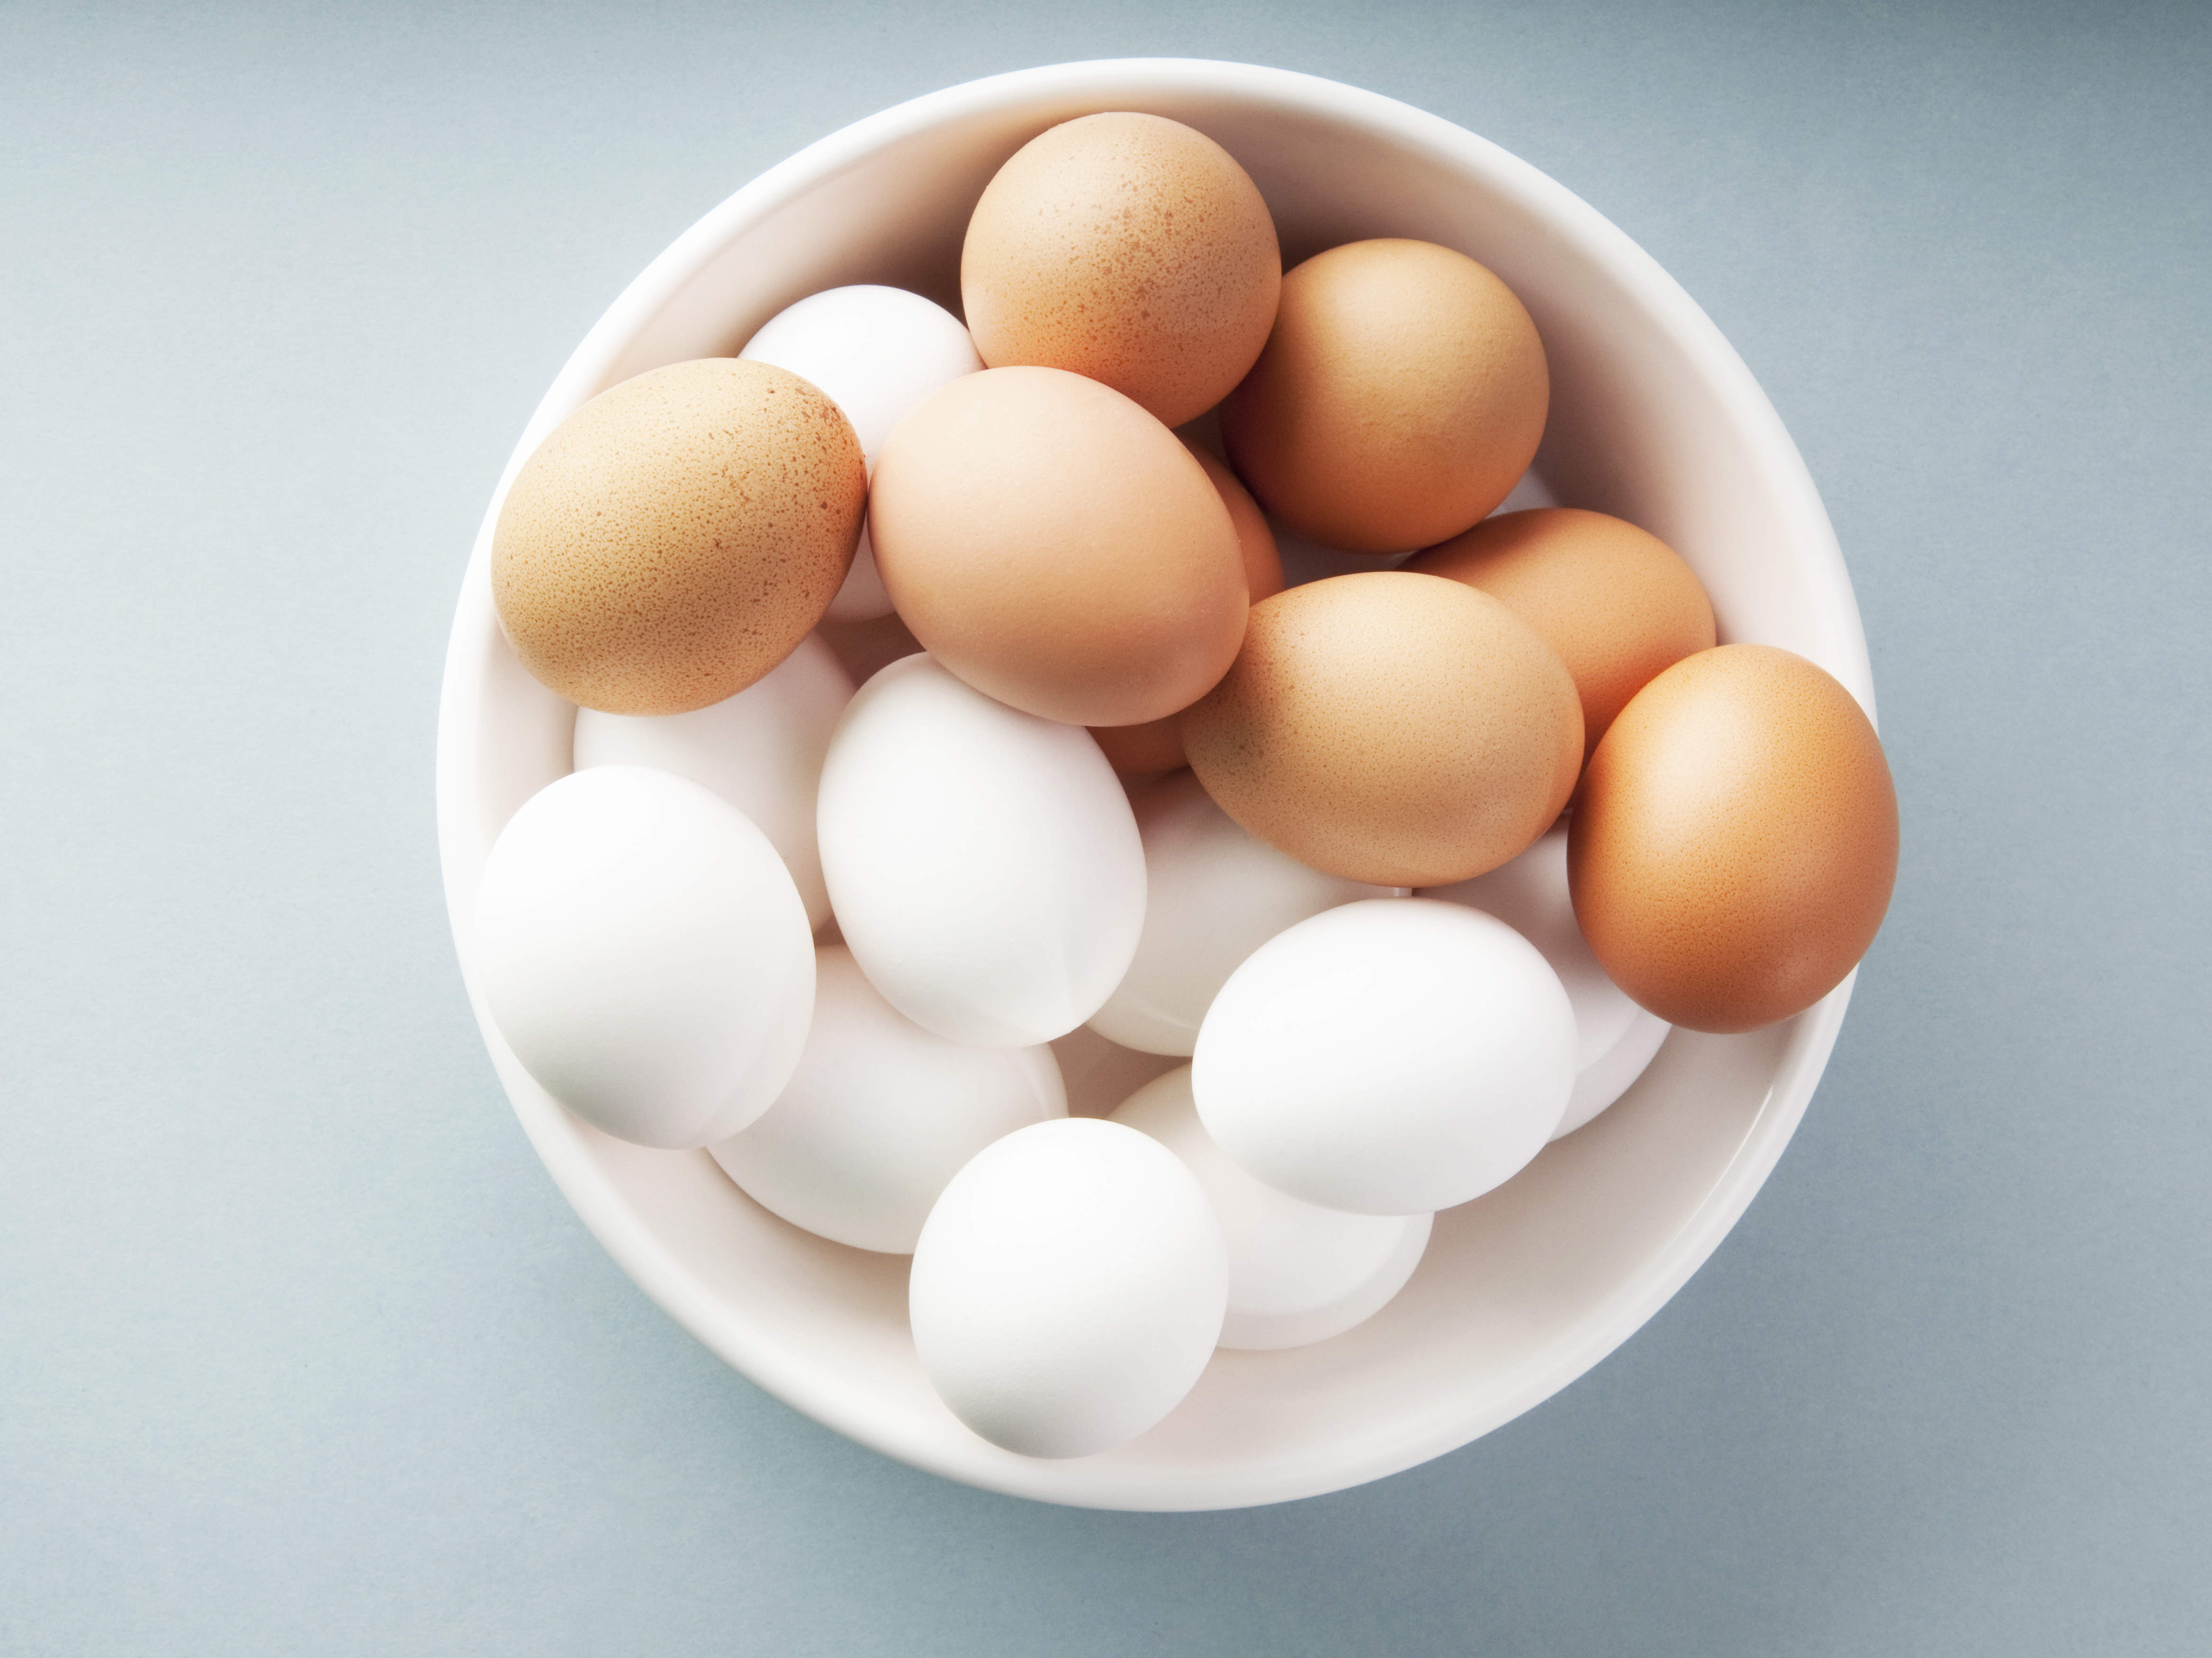 How are eggs useful? 86